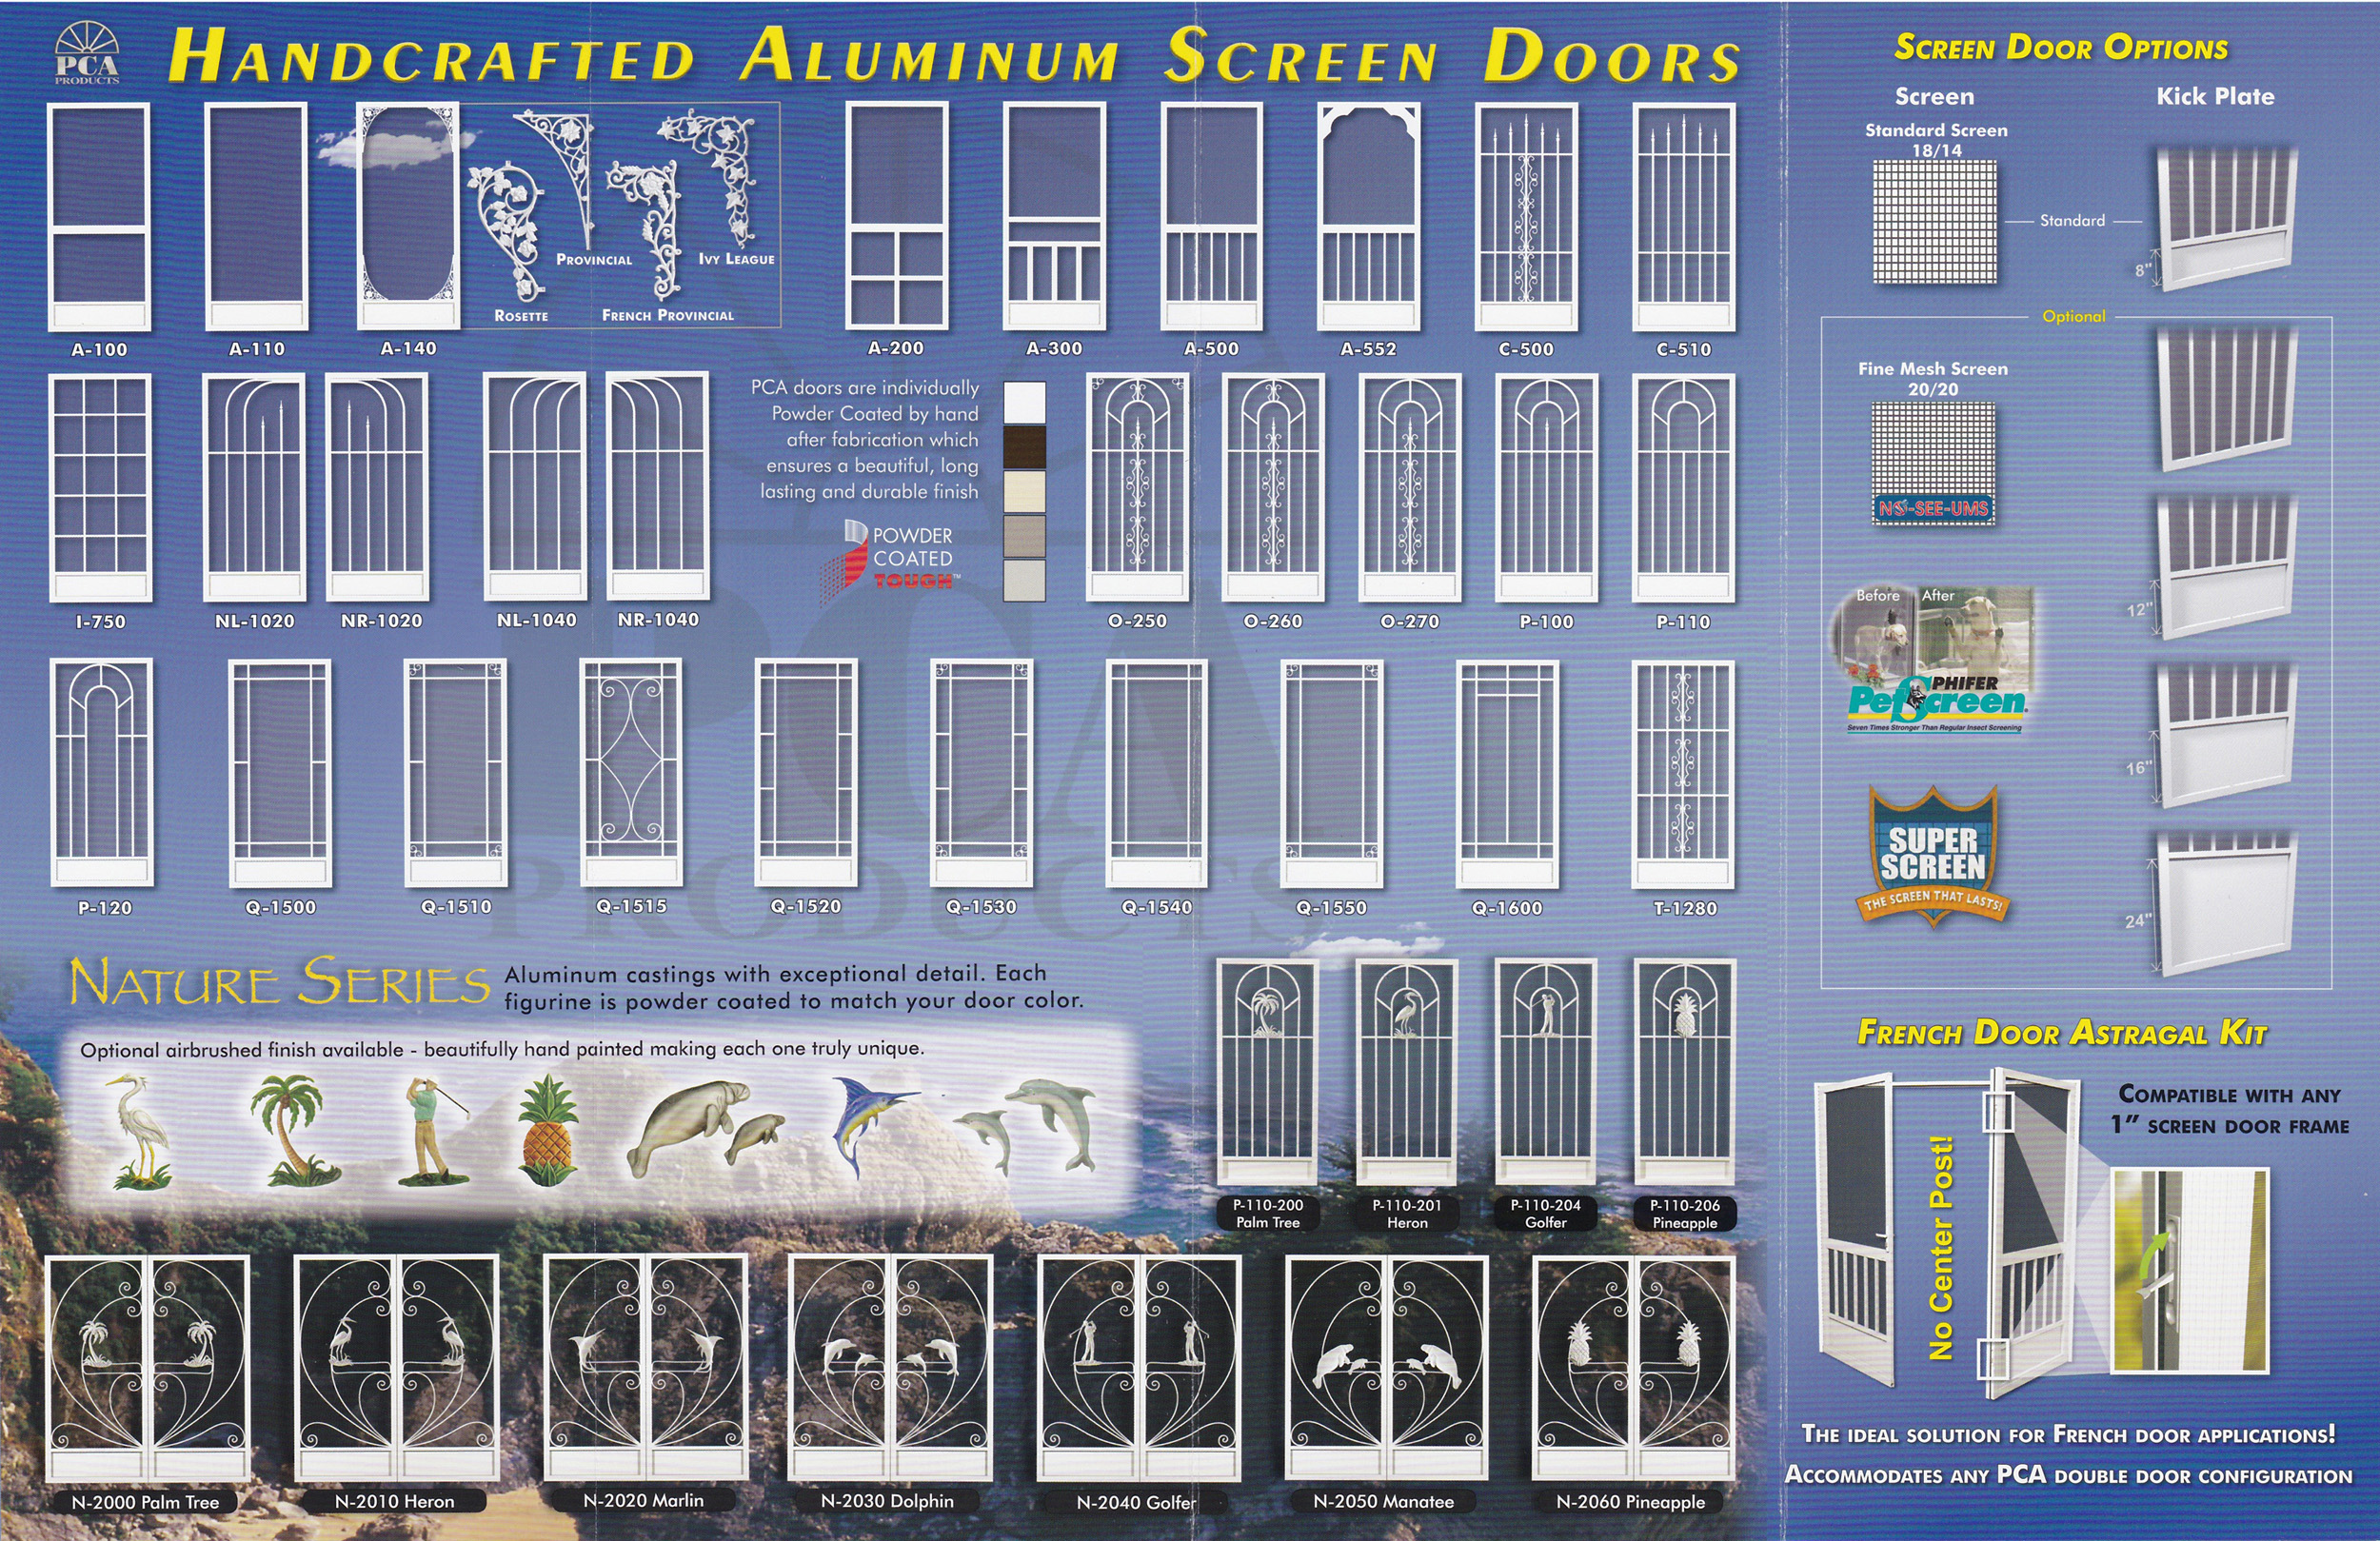 Choose your Screen Door